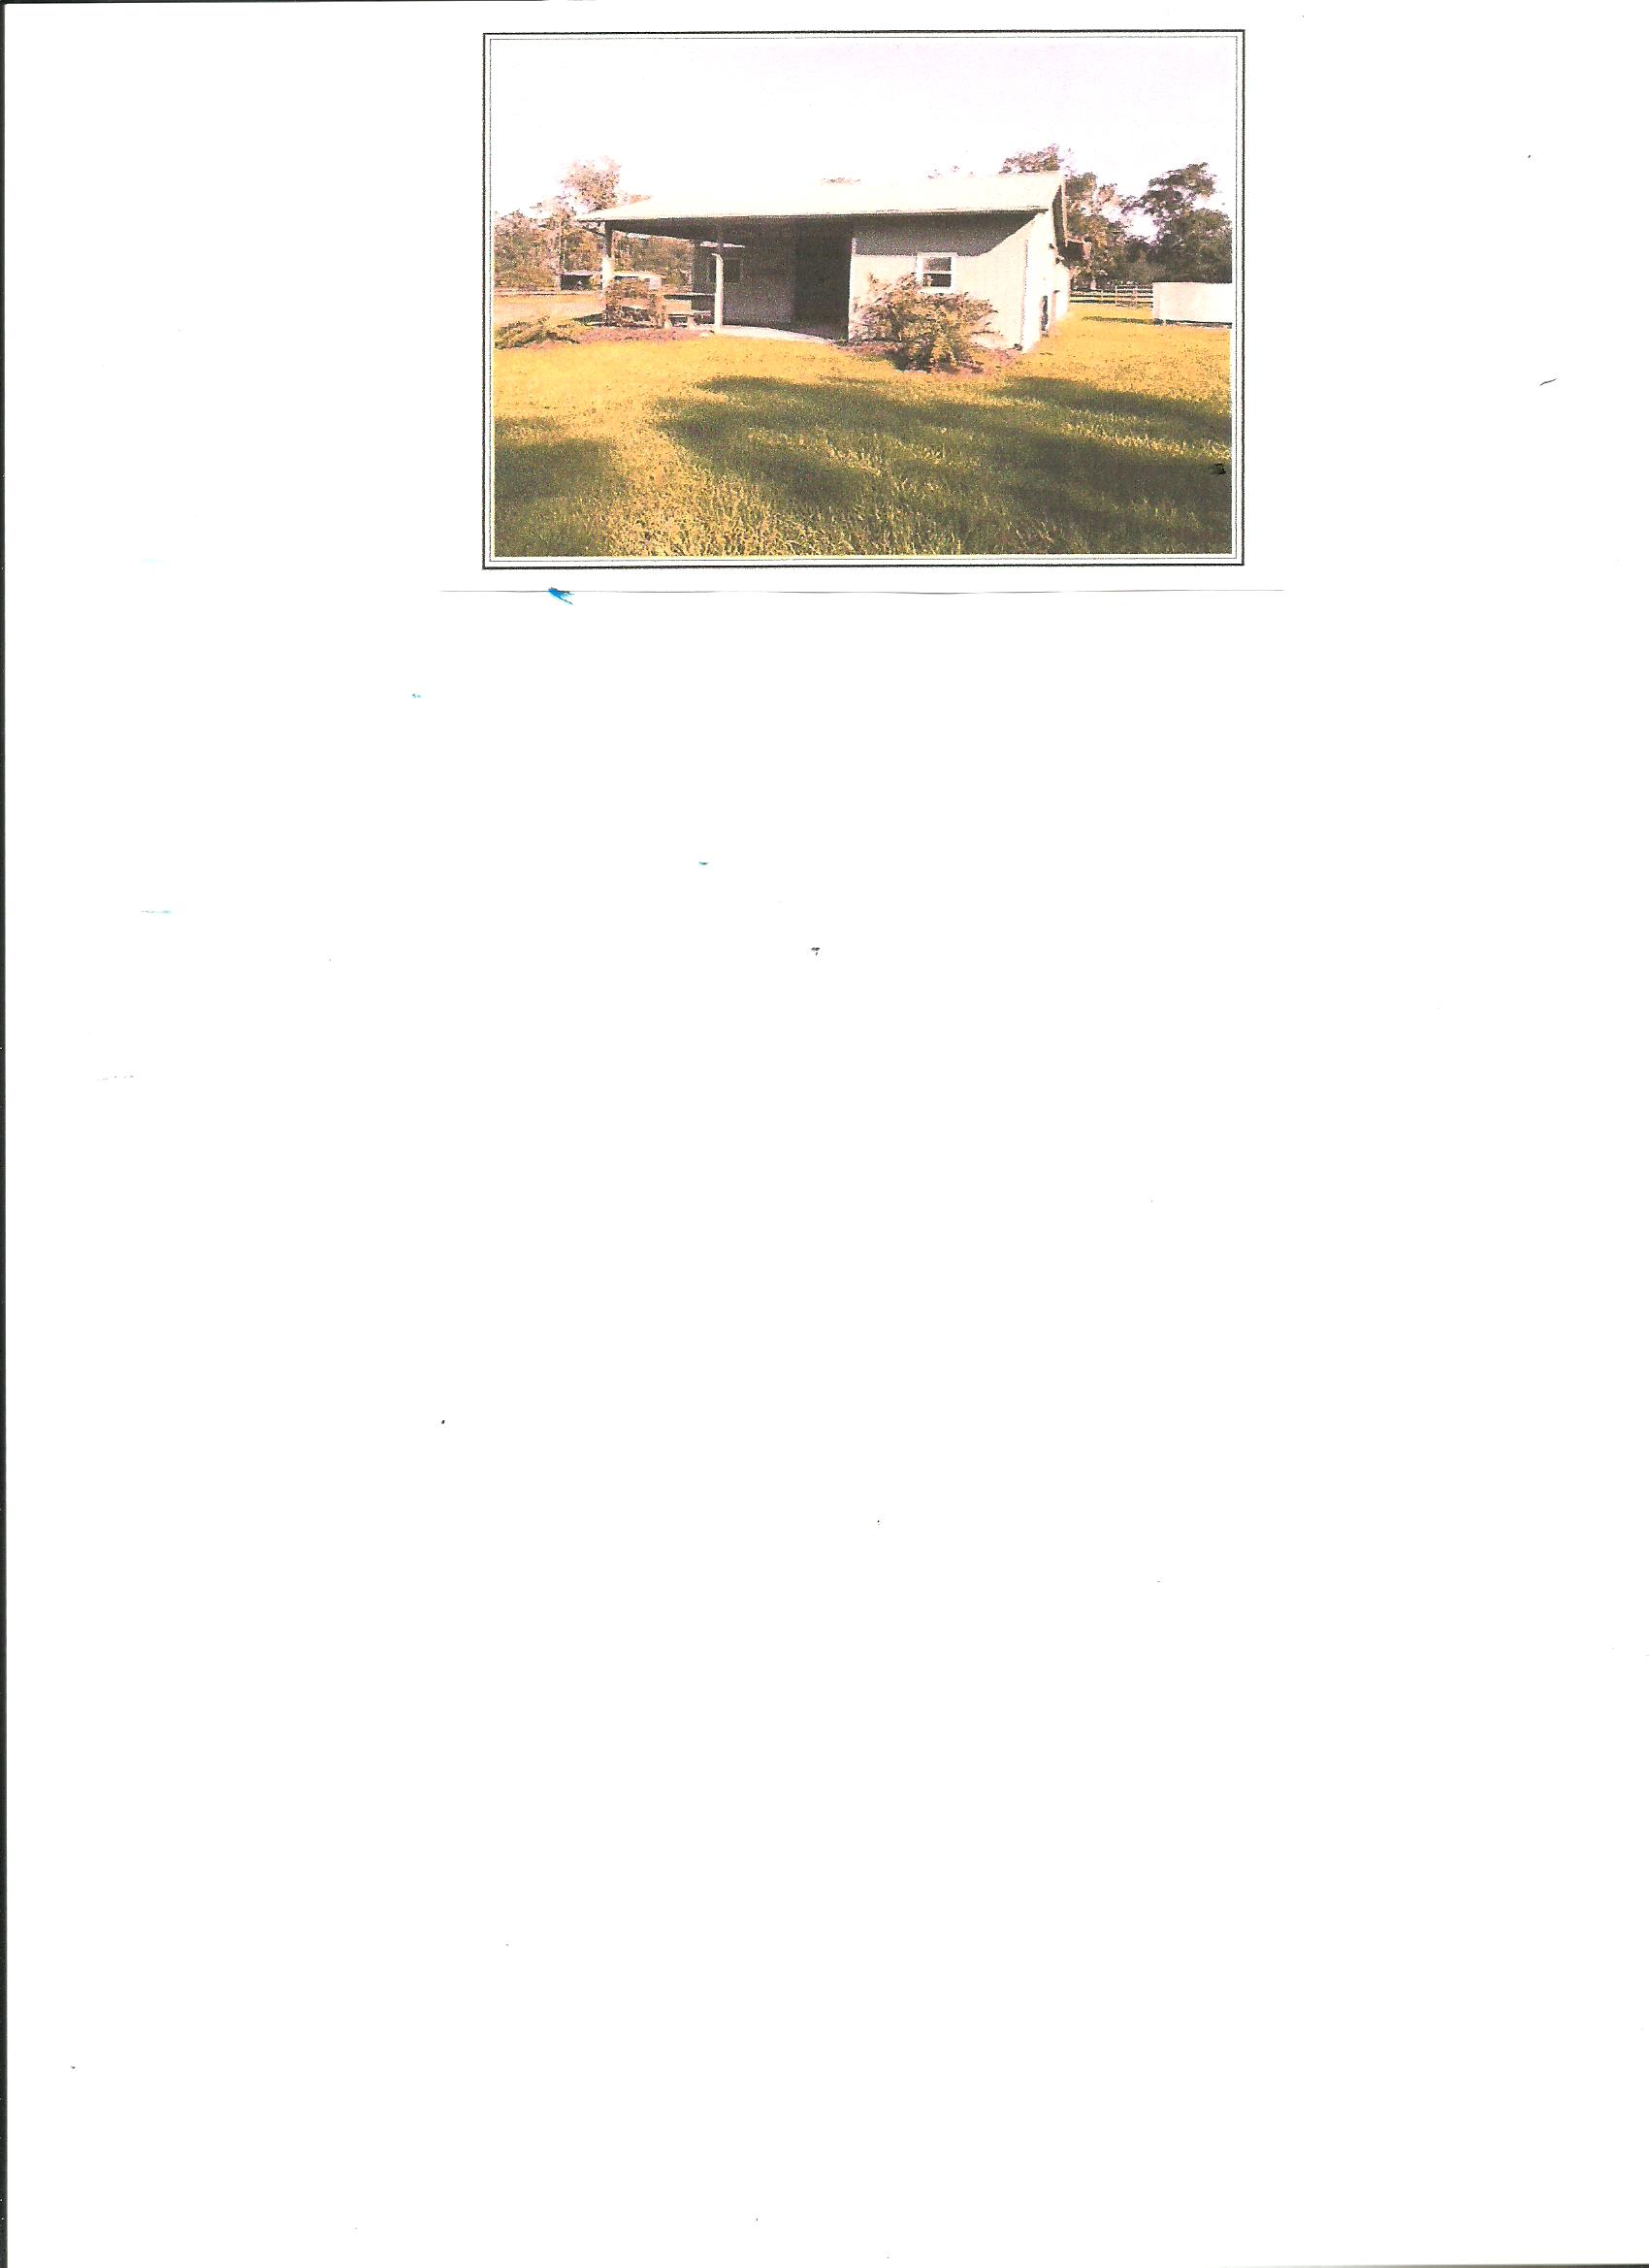 7 stall barn for rent/Board/Stalls